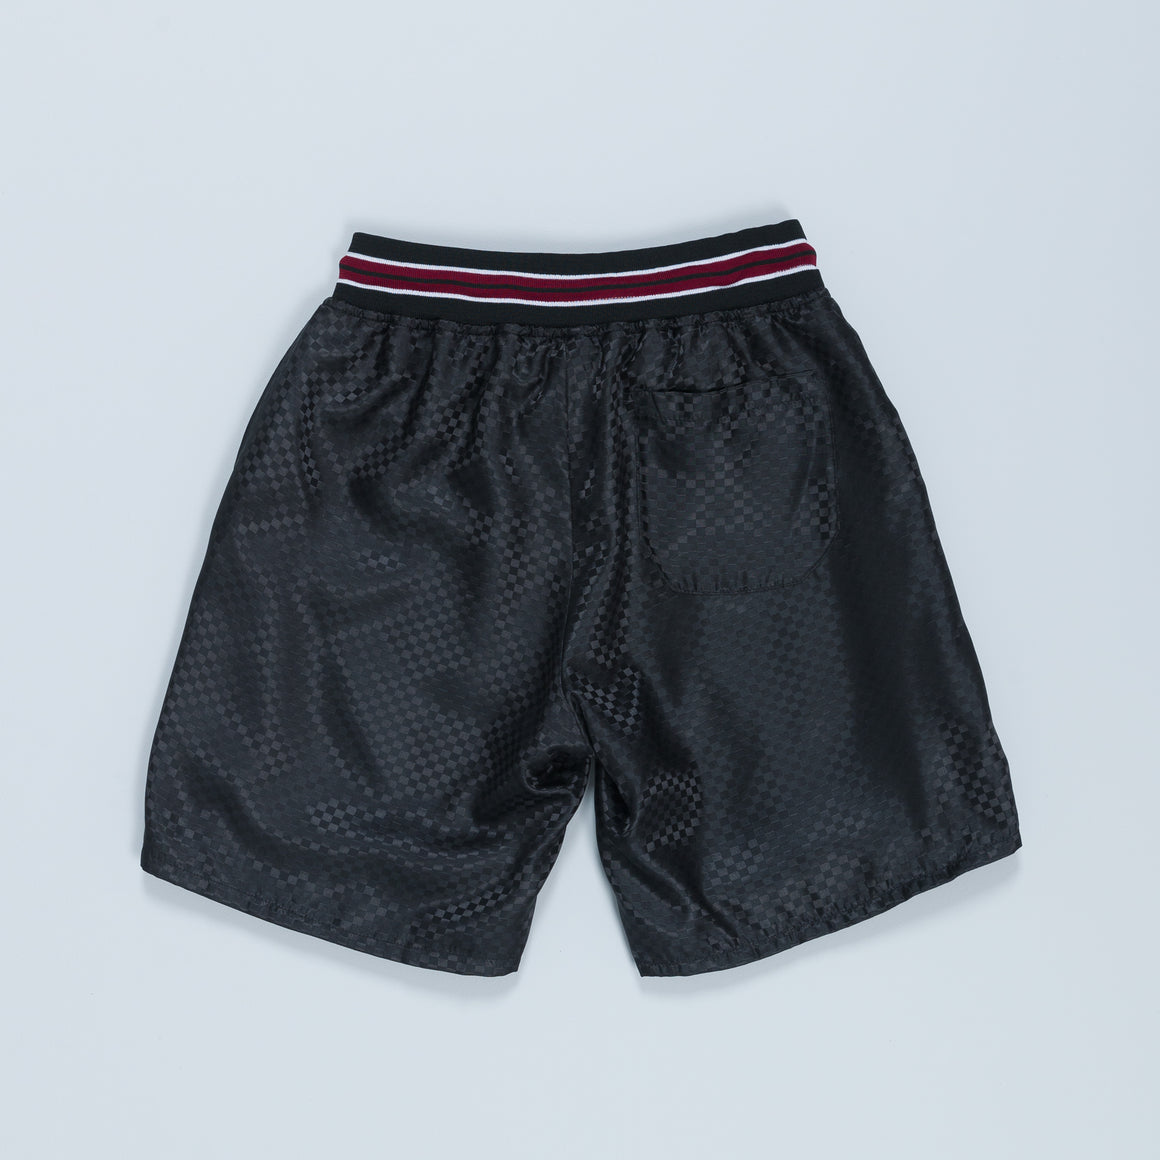 Soccer Shorts - Black - Up There